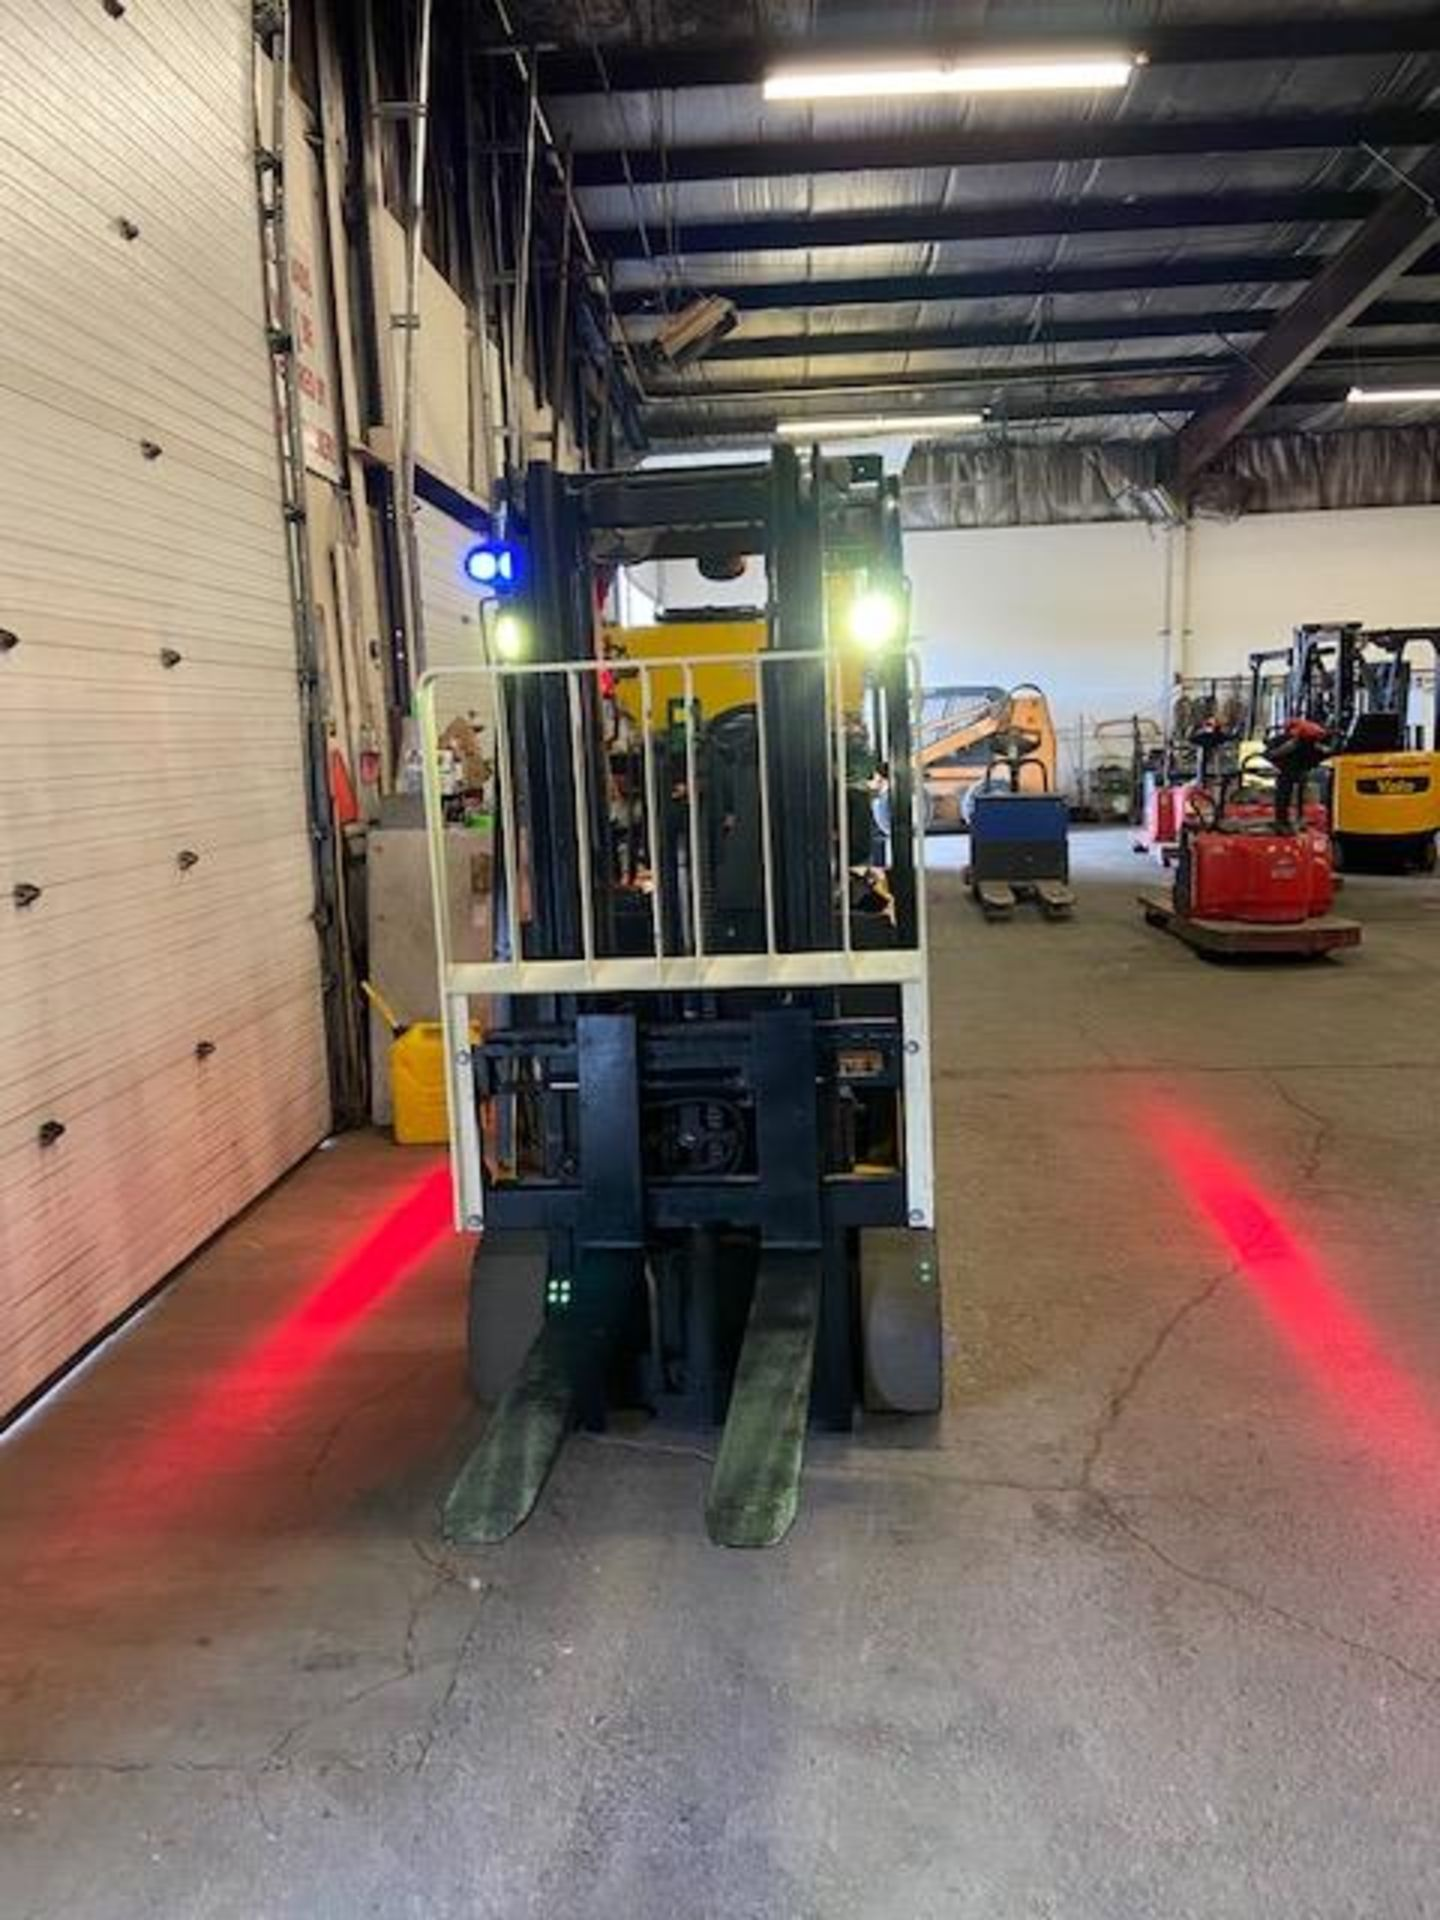 FREE CUSTOMS - 2015 Yale 5000lbs Capacity Forklift Electric with 3-STAGE MAST with sideshift MINT - Image 2 of 2